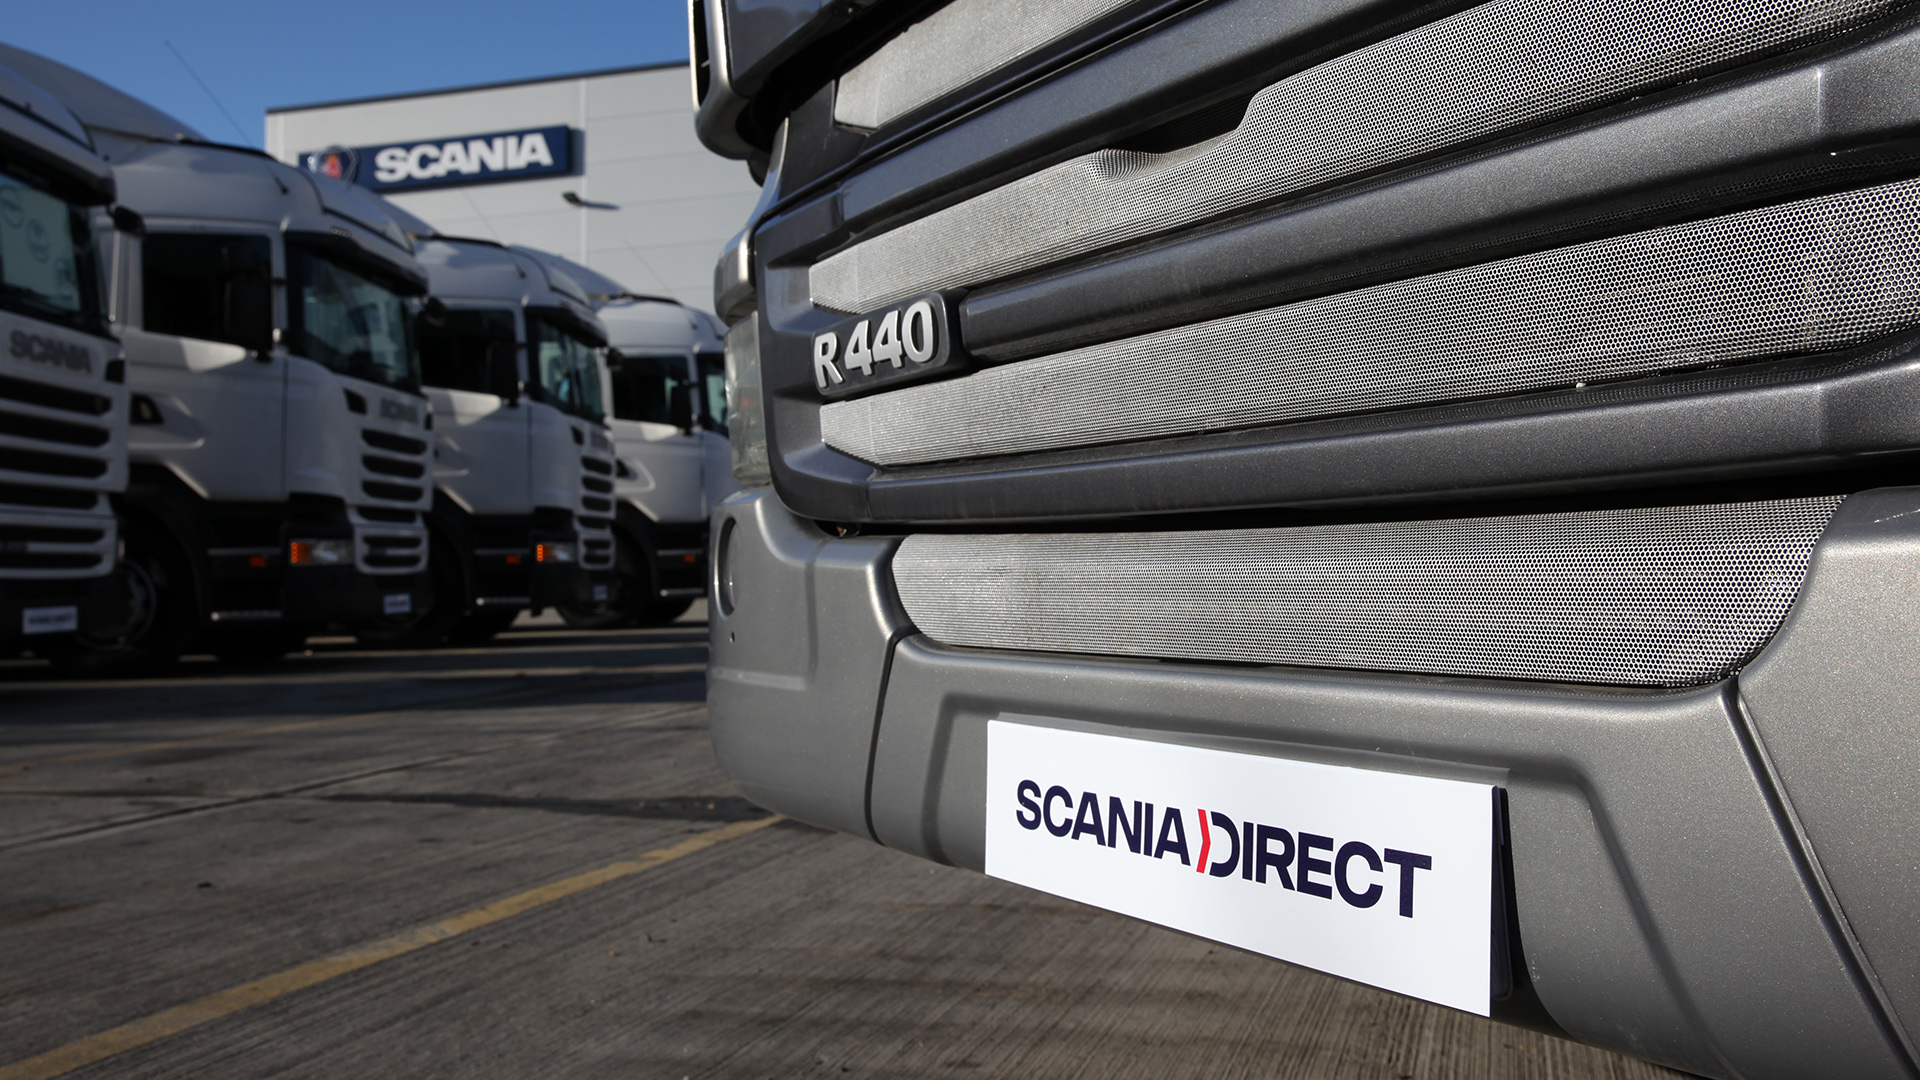 Close up of registration plate with Scania Direct on